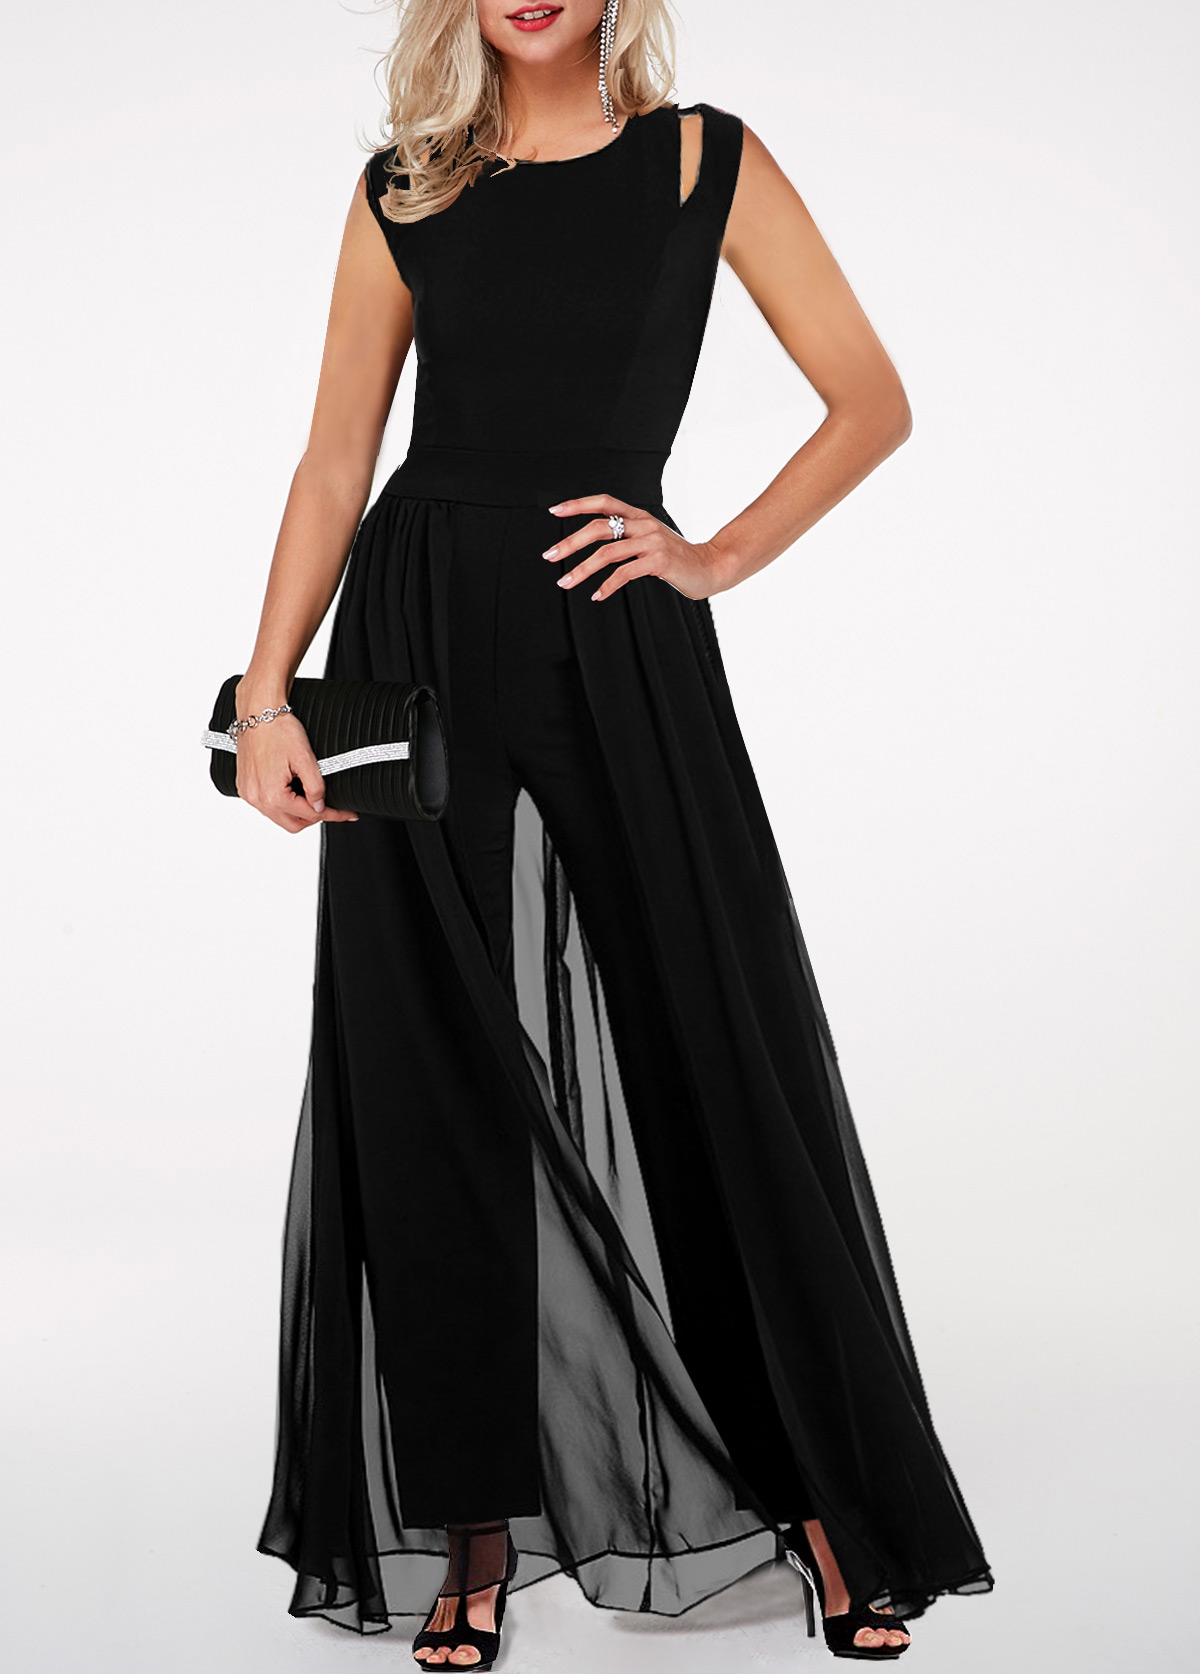 High Waist Round Neck Chiffon Overlay Black Jumpsuit